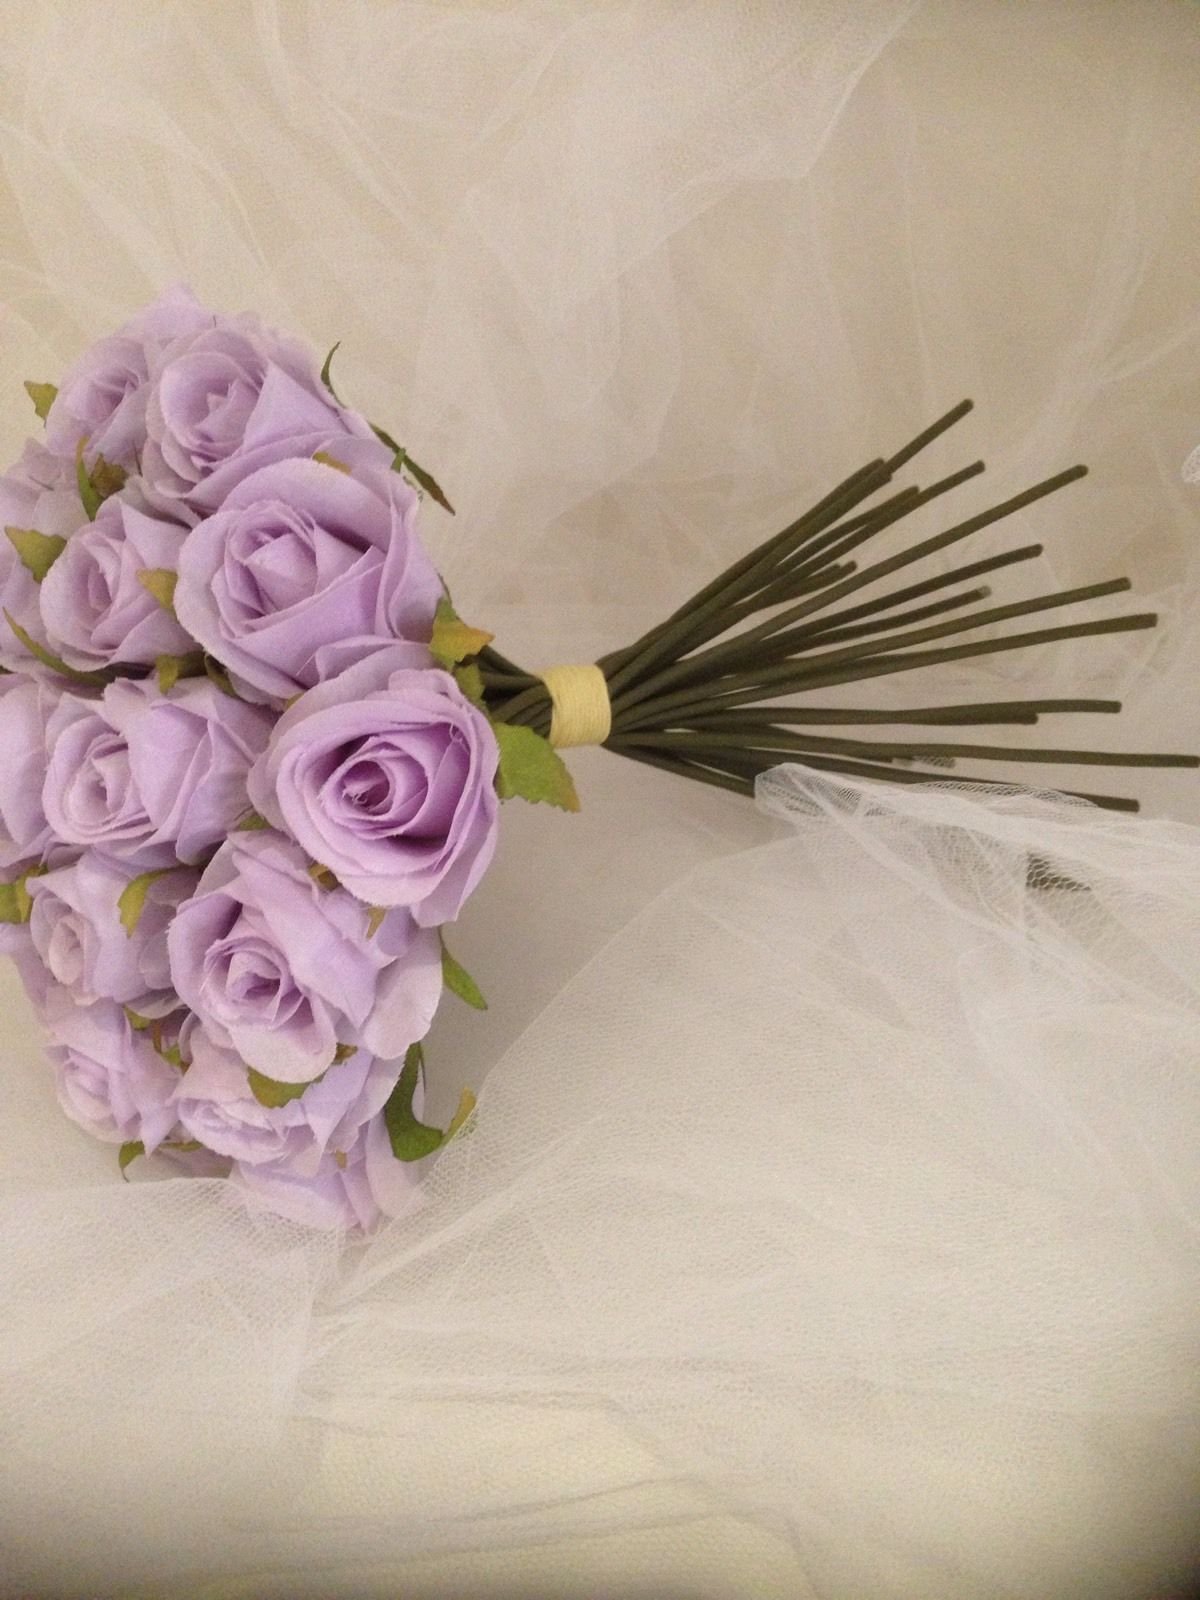 Lilac Lavender Rose 26 Stems Bridal Bouquet Stem Artificial Silk ...